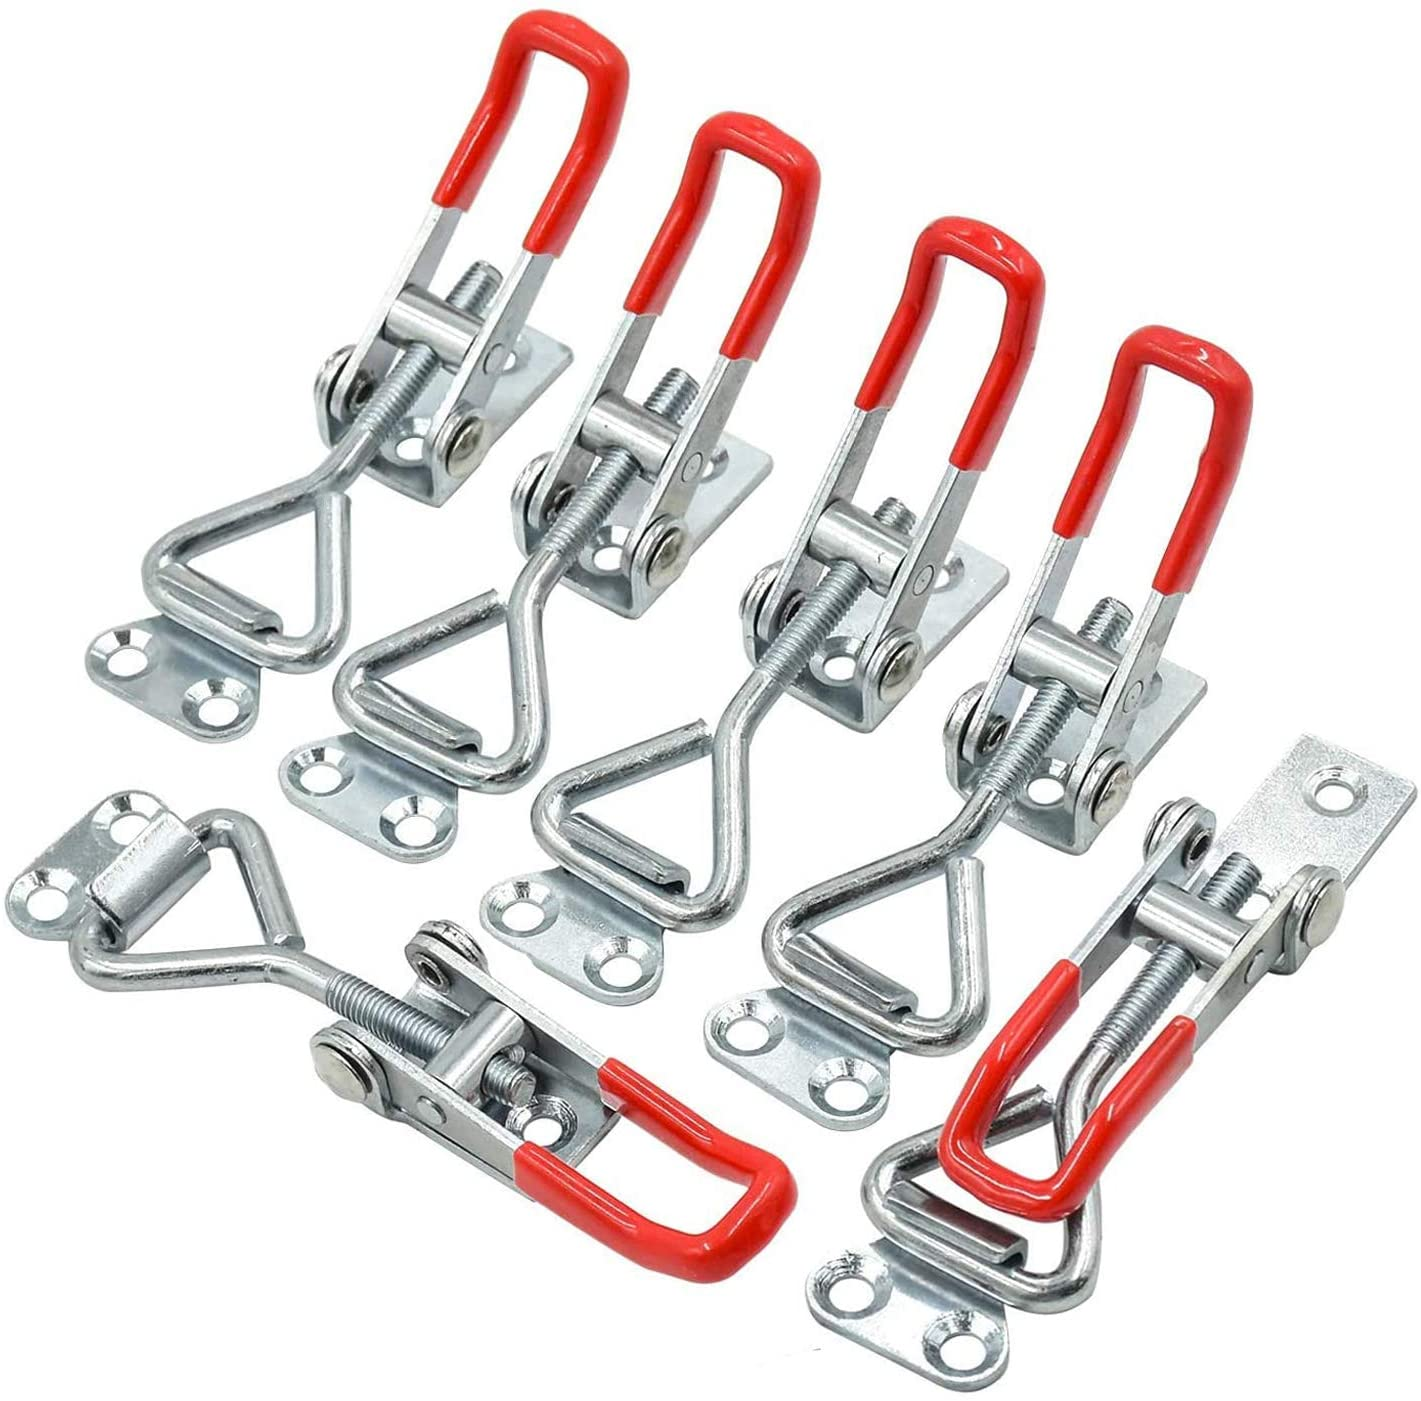 Rantecks 4PCS Toggle Clamp Adjustable Toggle Latch Clamp with Keyhole 180kg//396lbs Holding Capacity for Cabinet Boxes Trunk Door and Closet